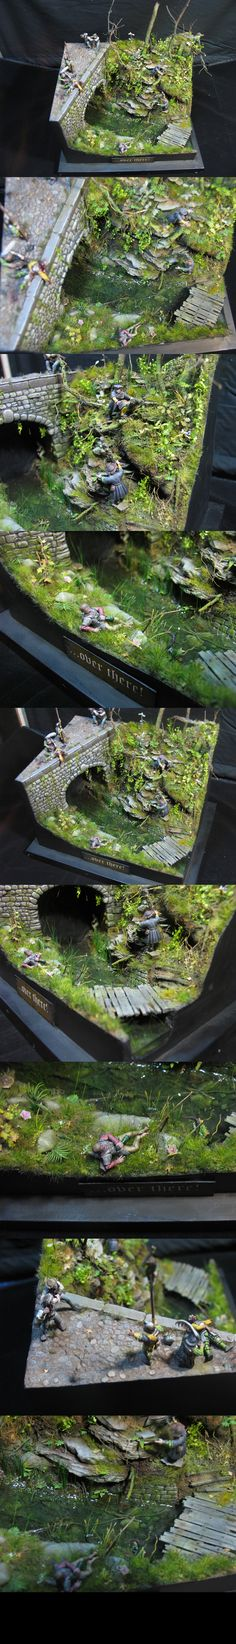 Diorama: Over There! -Gold at GD Italy 2013-